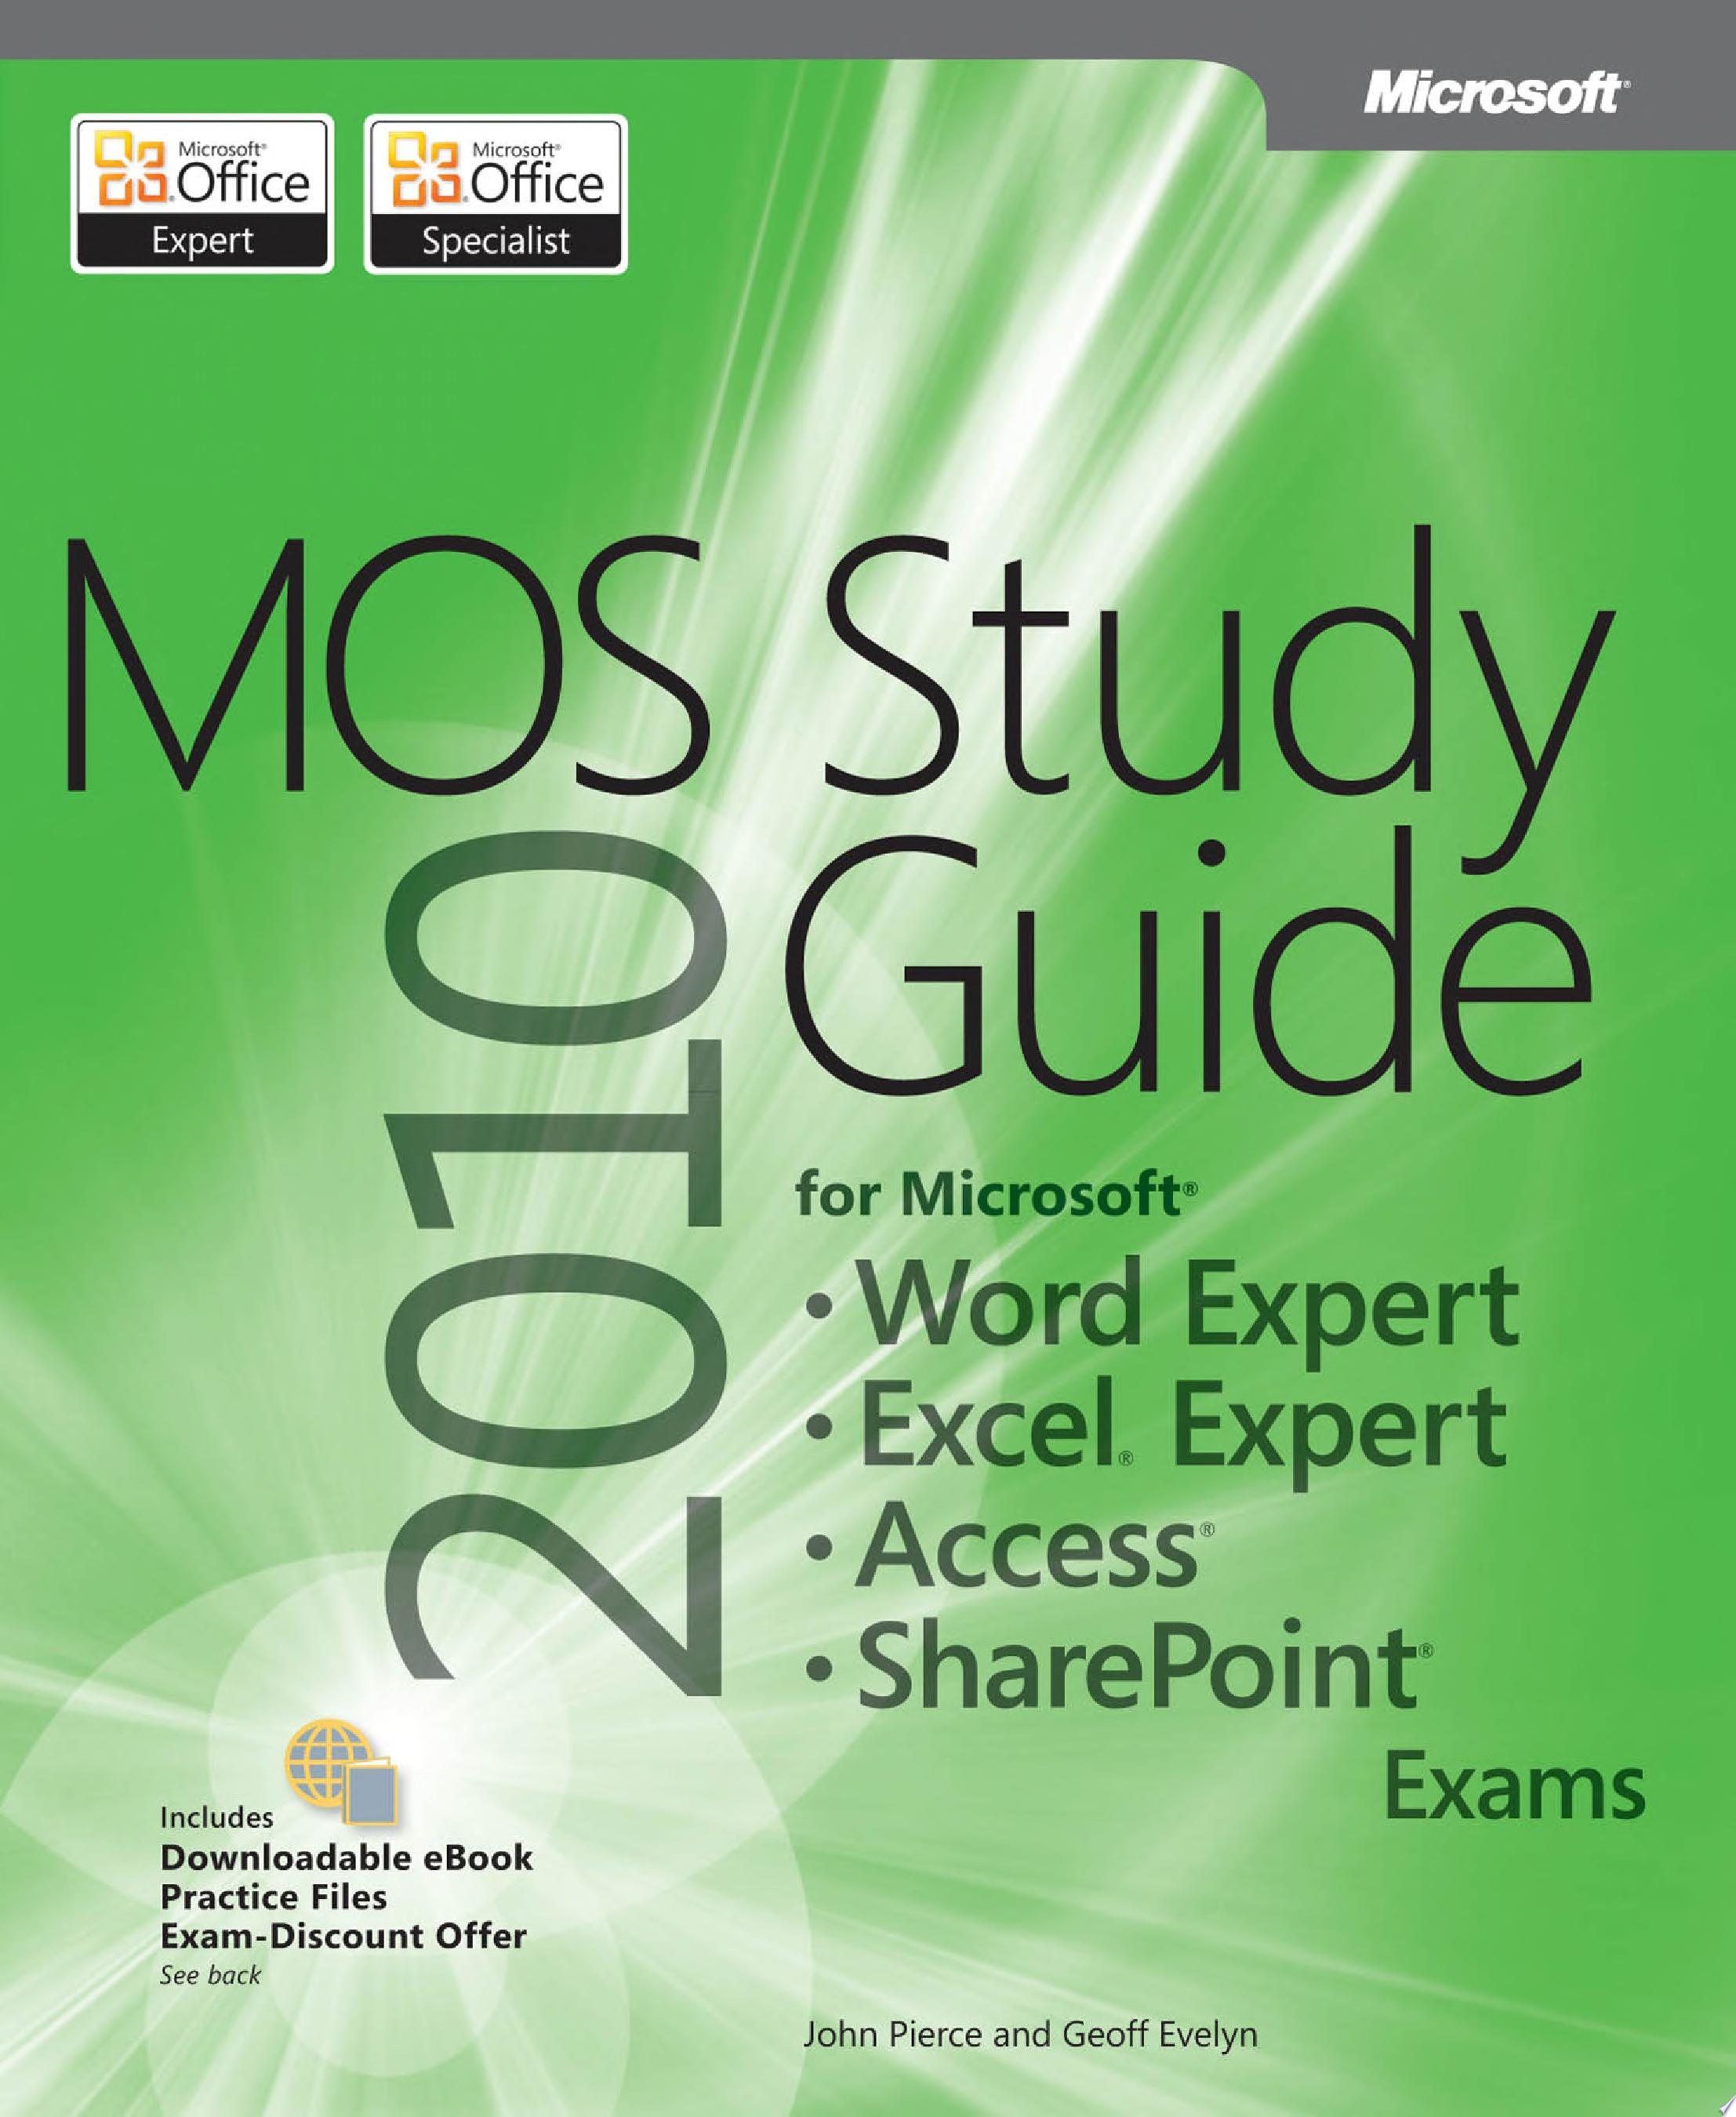 MOS 2010 Study Guide for Microsoft Word Expert  Excel Expert  Access  and SharePoint Exams